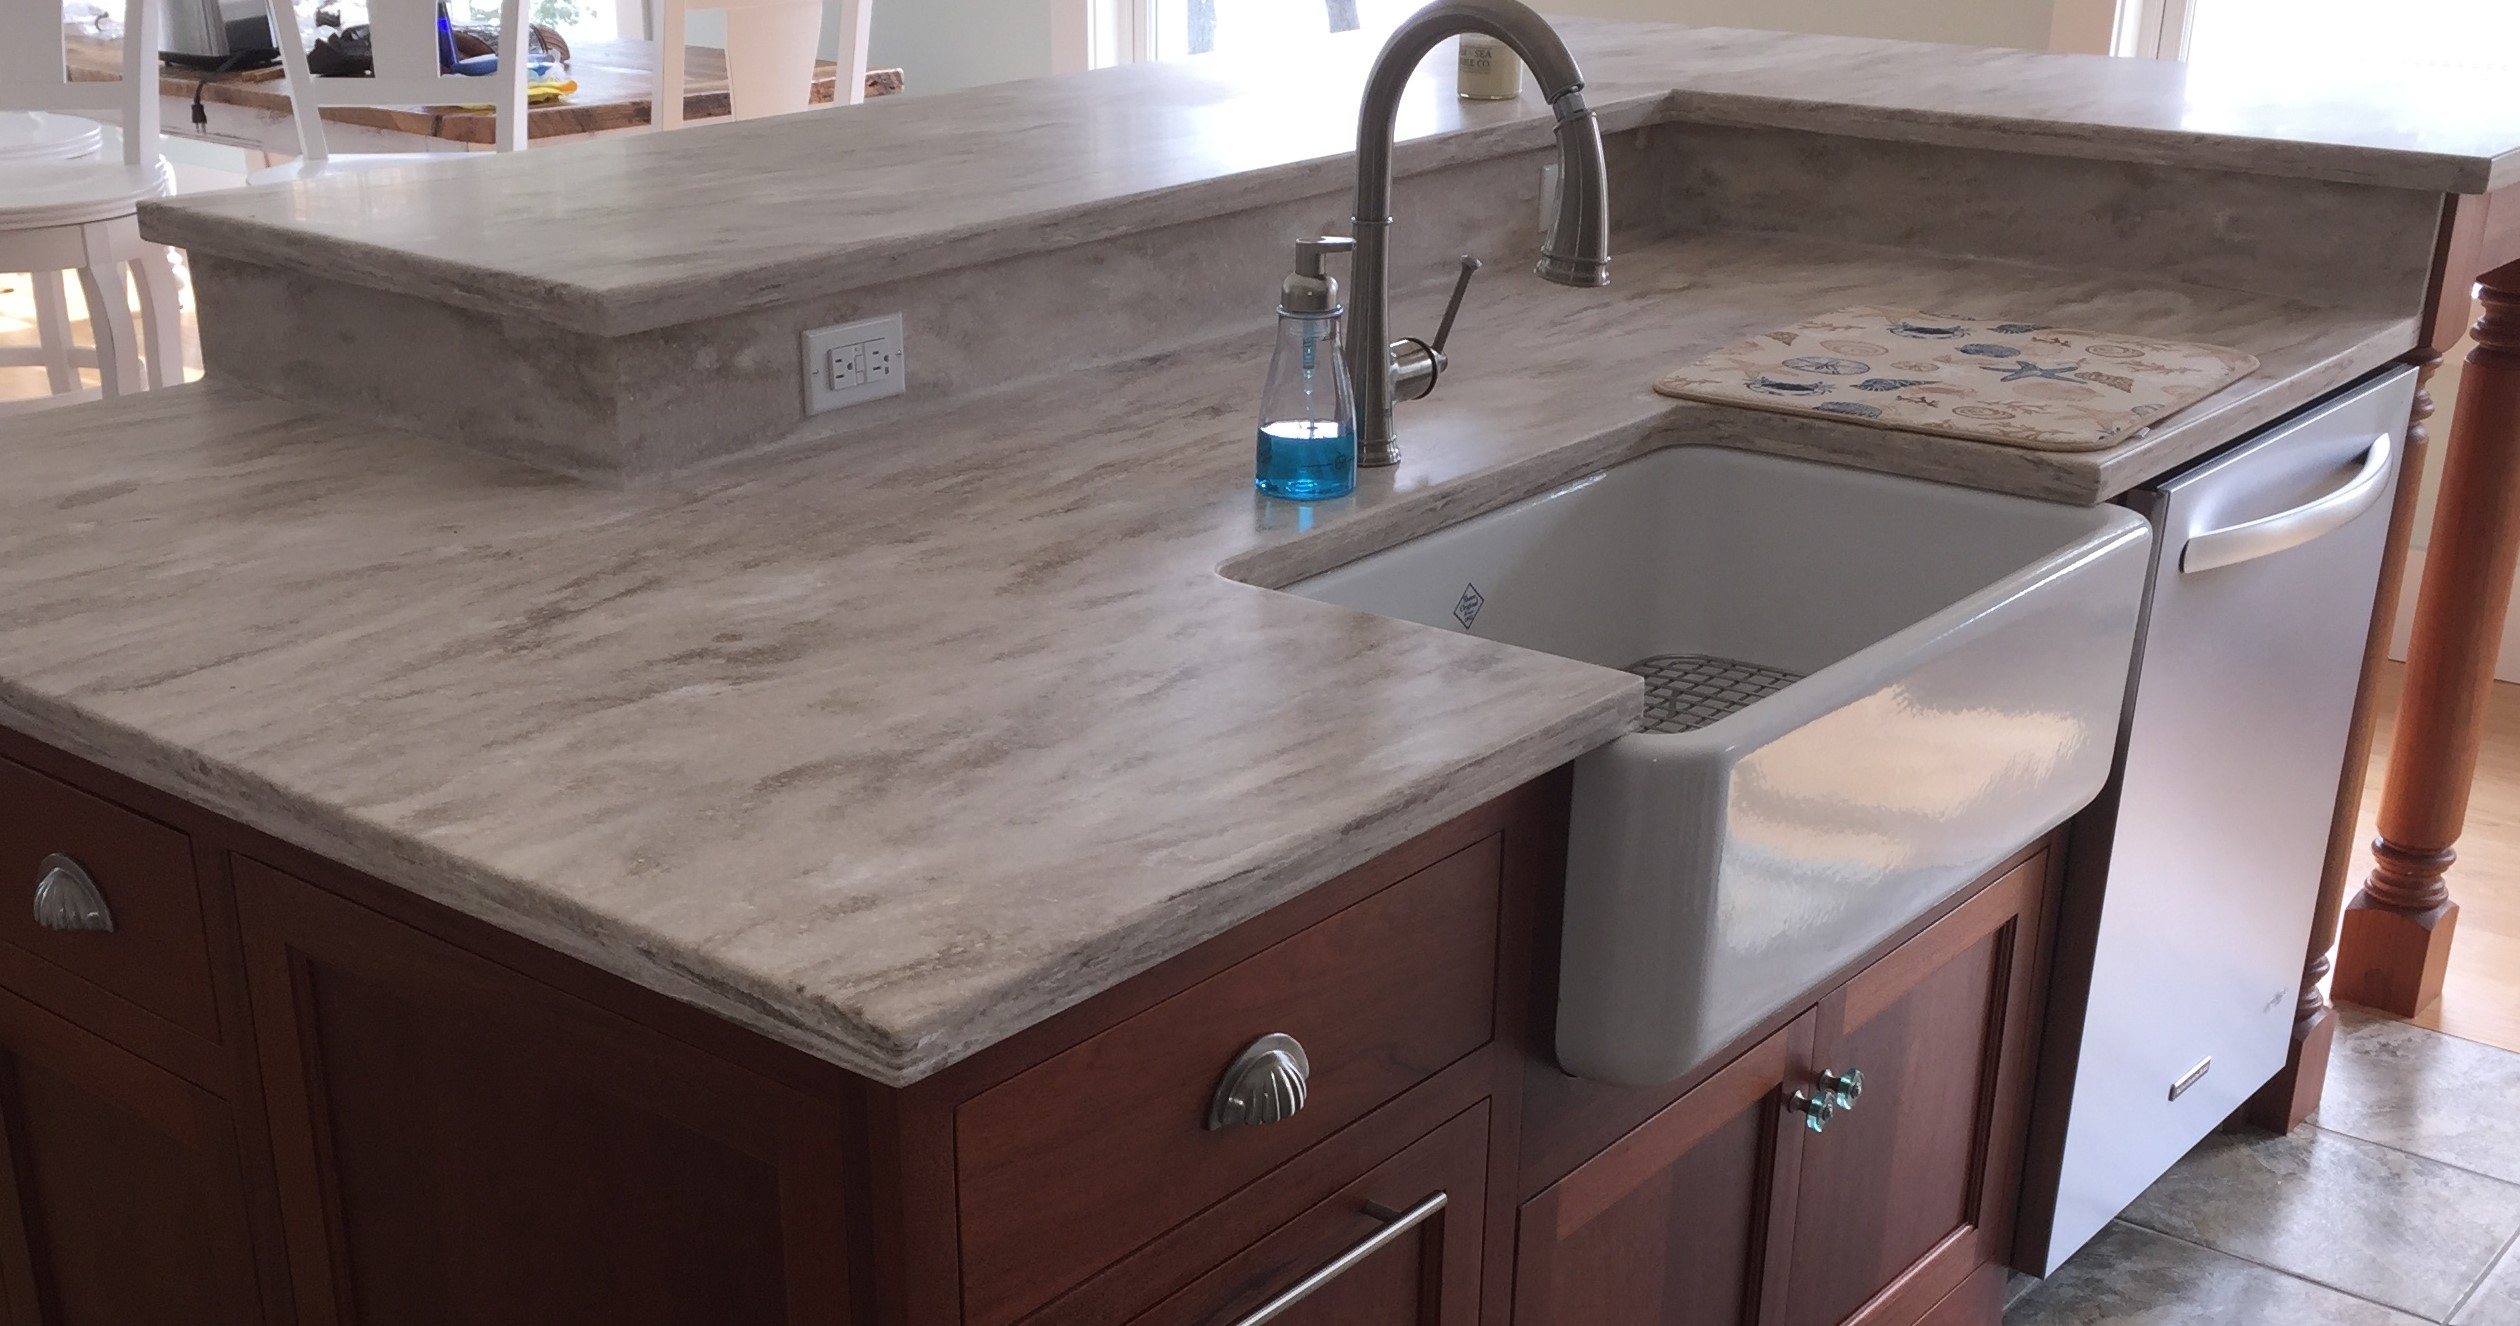 We Are Also A Certified Dupont CORIAN Fabricator Featuring Not Only Custom  Countertops But Also Corian Farm Sinks And Tub Decks With Coved Inside  Corners ...